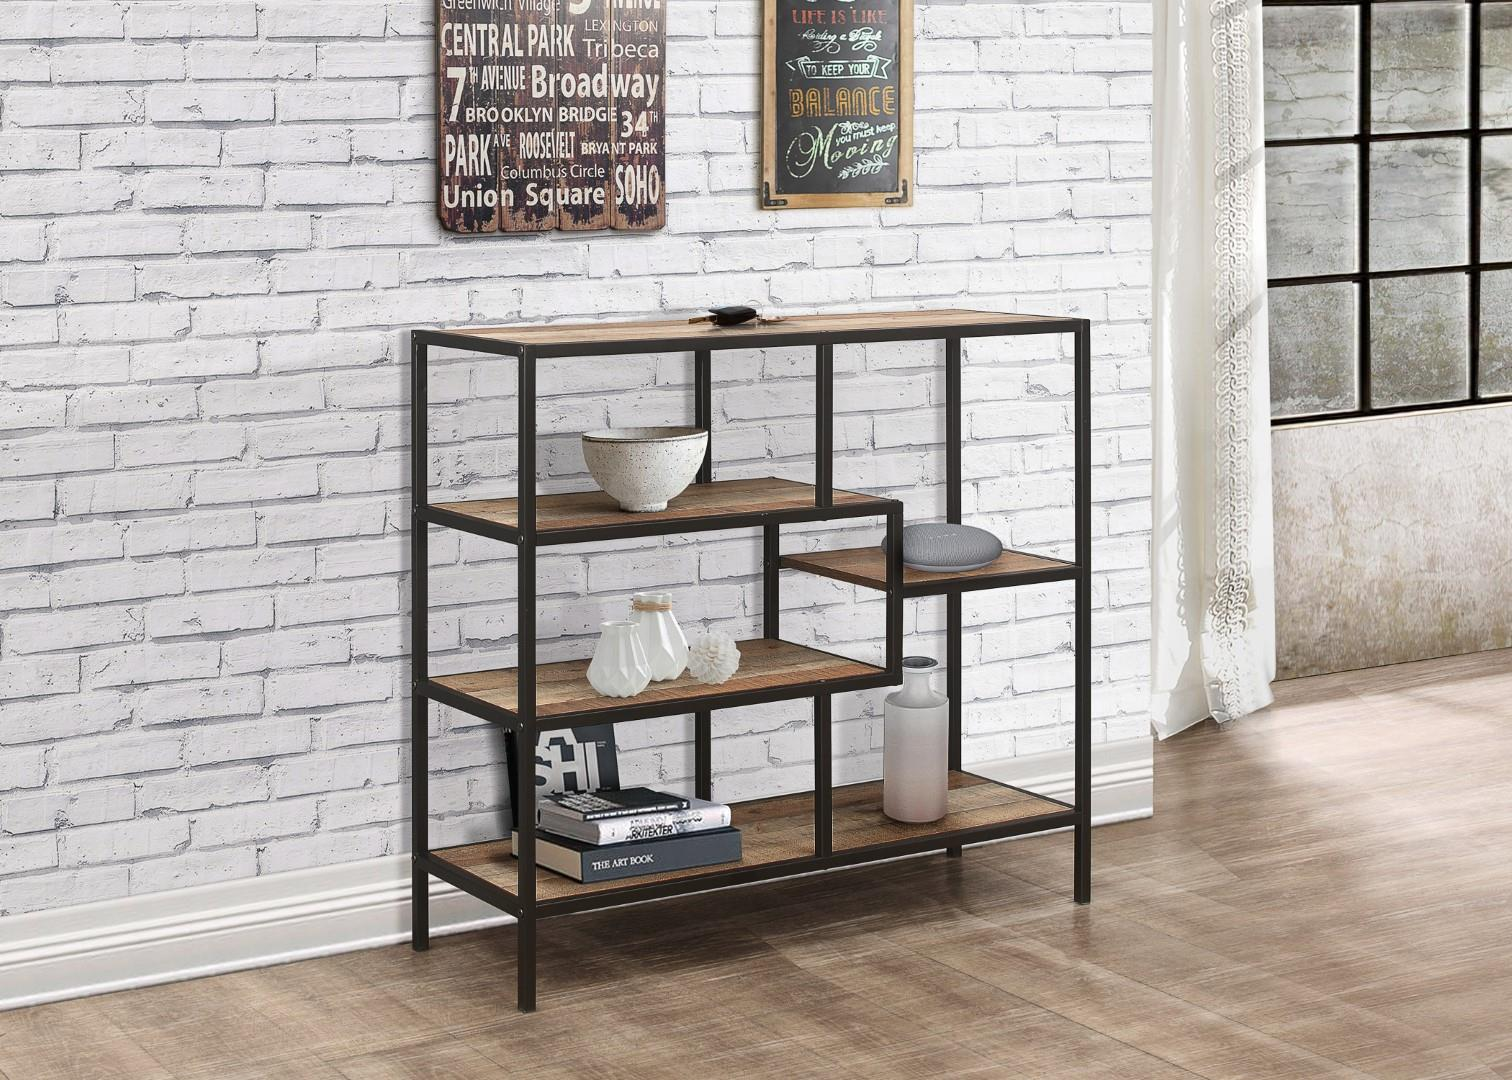 Birlea Urban Industrial Chic Wide Bookcase Shelving Unit Rustic Metal Wood